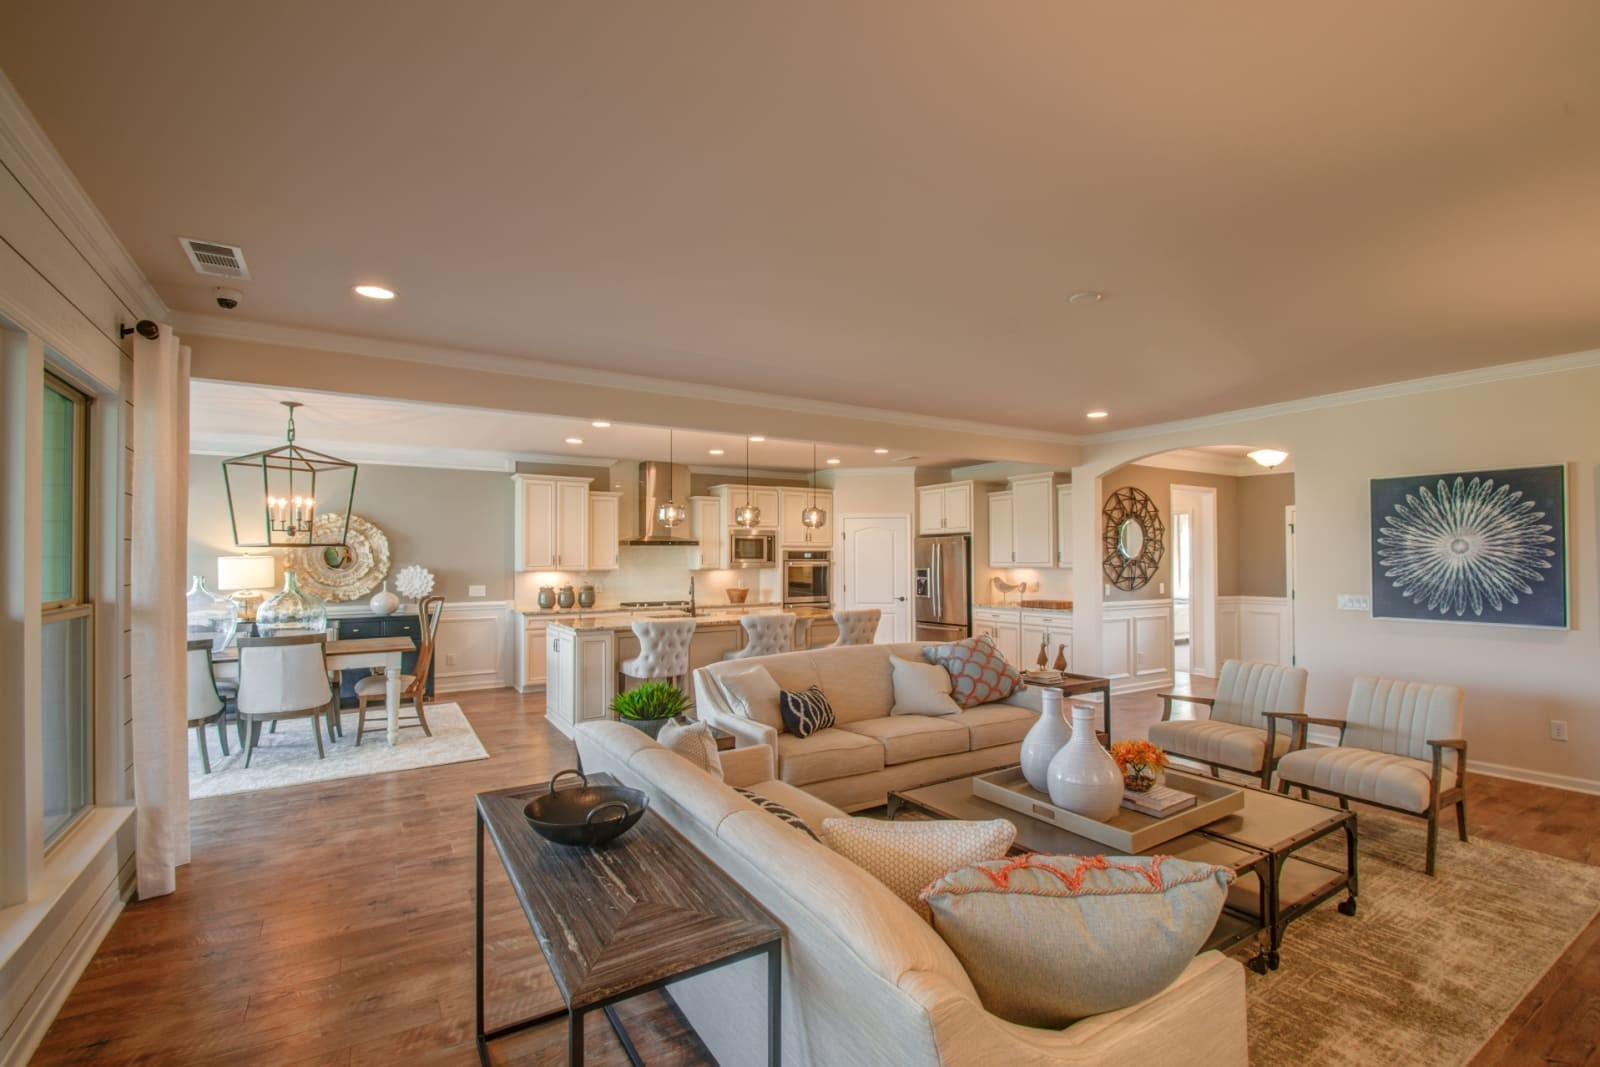 Dunwoody Way featuring stacked stone fireplace, dual owner's suite, 4' garage extension, separate library with walk up attic storage in garage. AMENITIES GALORE: resort style pool, tennis courts, pickleball courts, yoga studio, dog park, gym, ballroom, 13 miles of sidewalk and more